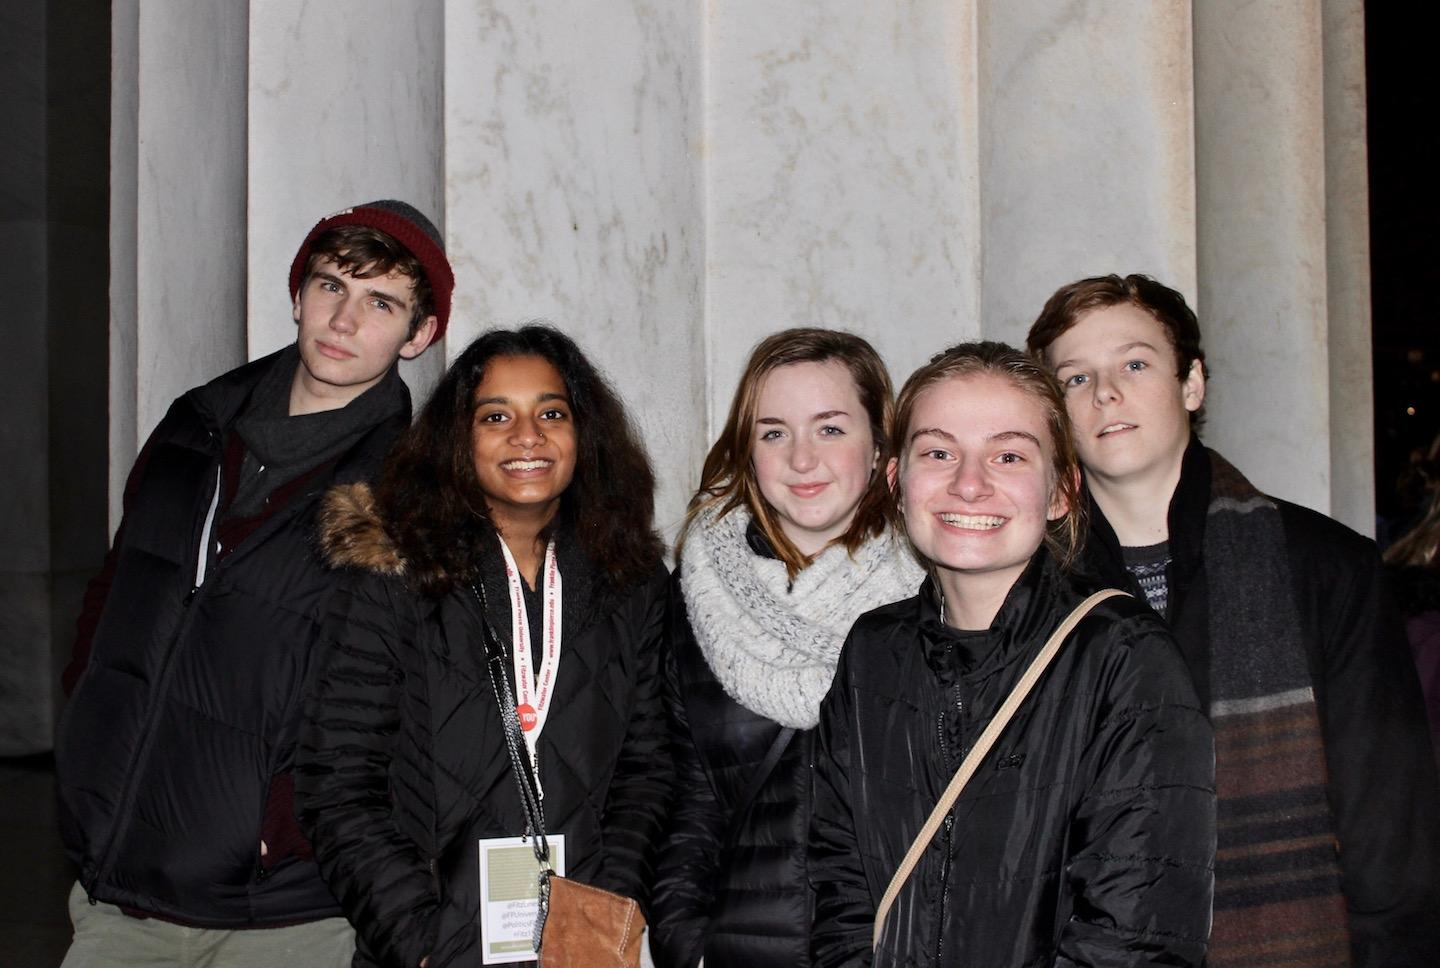 Left+to+Right%3A+Jason+Frank+%28ConVal%29%2C+Meghana+Reddy%2C+Anna+Waldron%2C+Sophie+Nikolenko%2C+Seth+Facey%0A